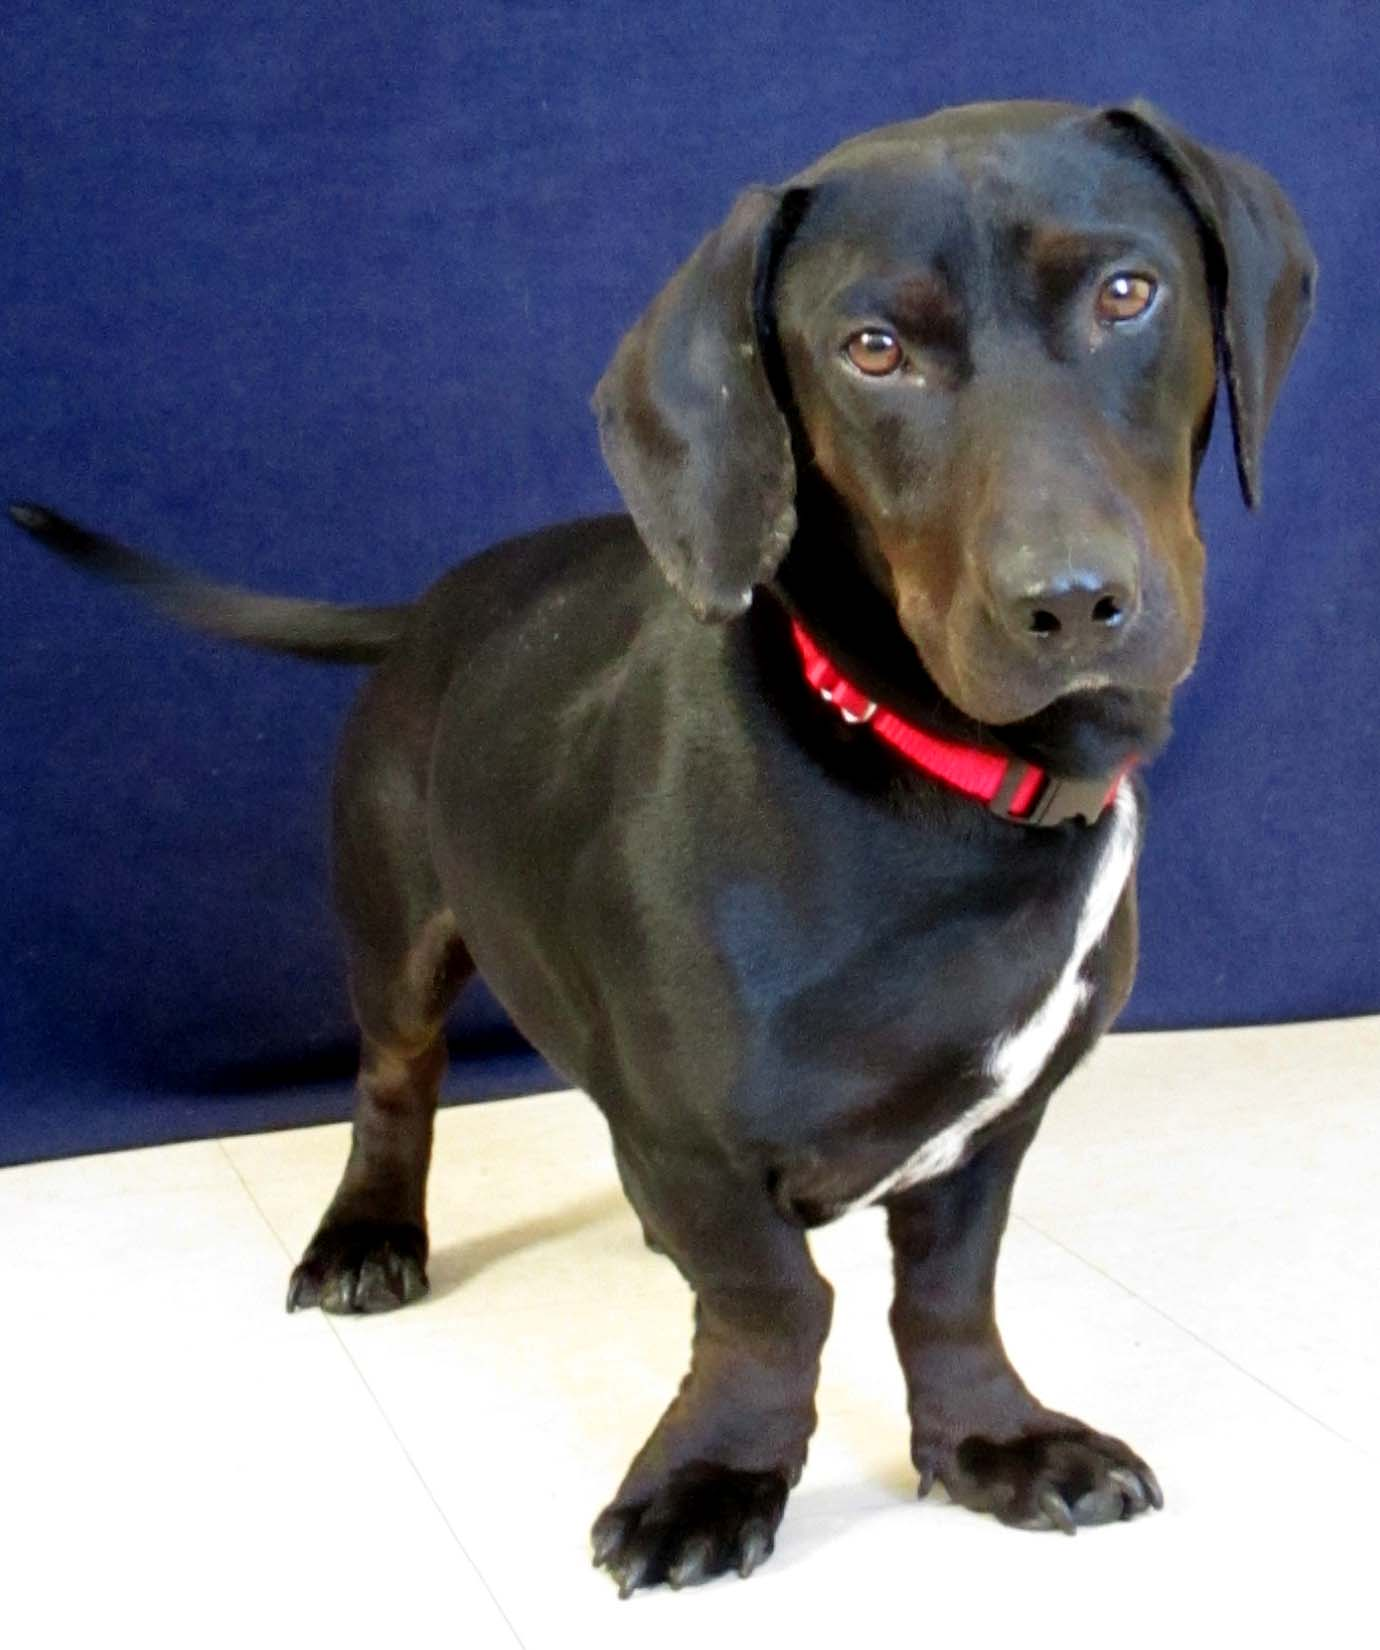 Ray is a 2-year-old Dachshund mix. He is very sweet and cuddly. Ray was transferred here from another shelter in Alabama. Unfortunately he has heartworm;but luckily for him it has been treated. It can take up to 6 months after treatment for the heartworms to be gone. Due to this, Ray would be fostered by his family until he would test negative for heartworm. Once he is negative, he could officially be adopted!